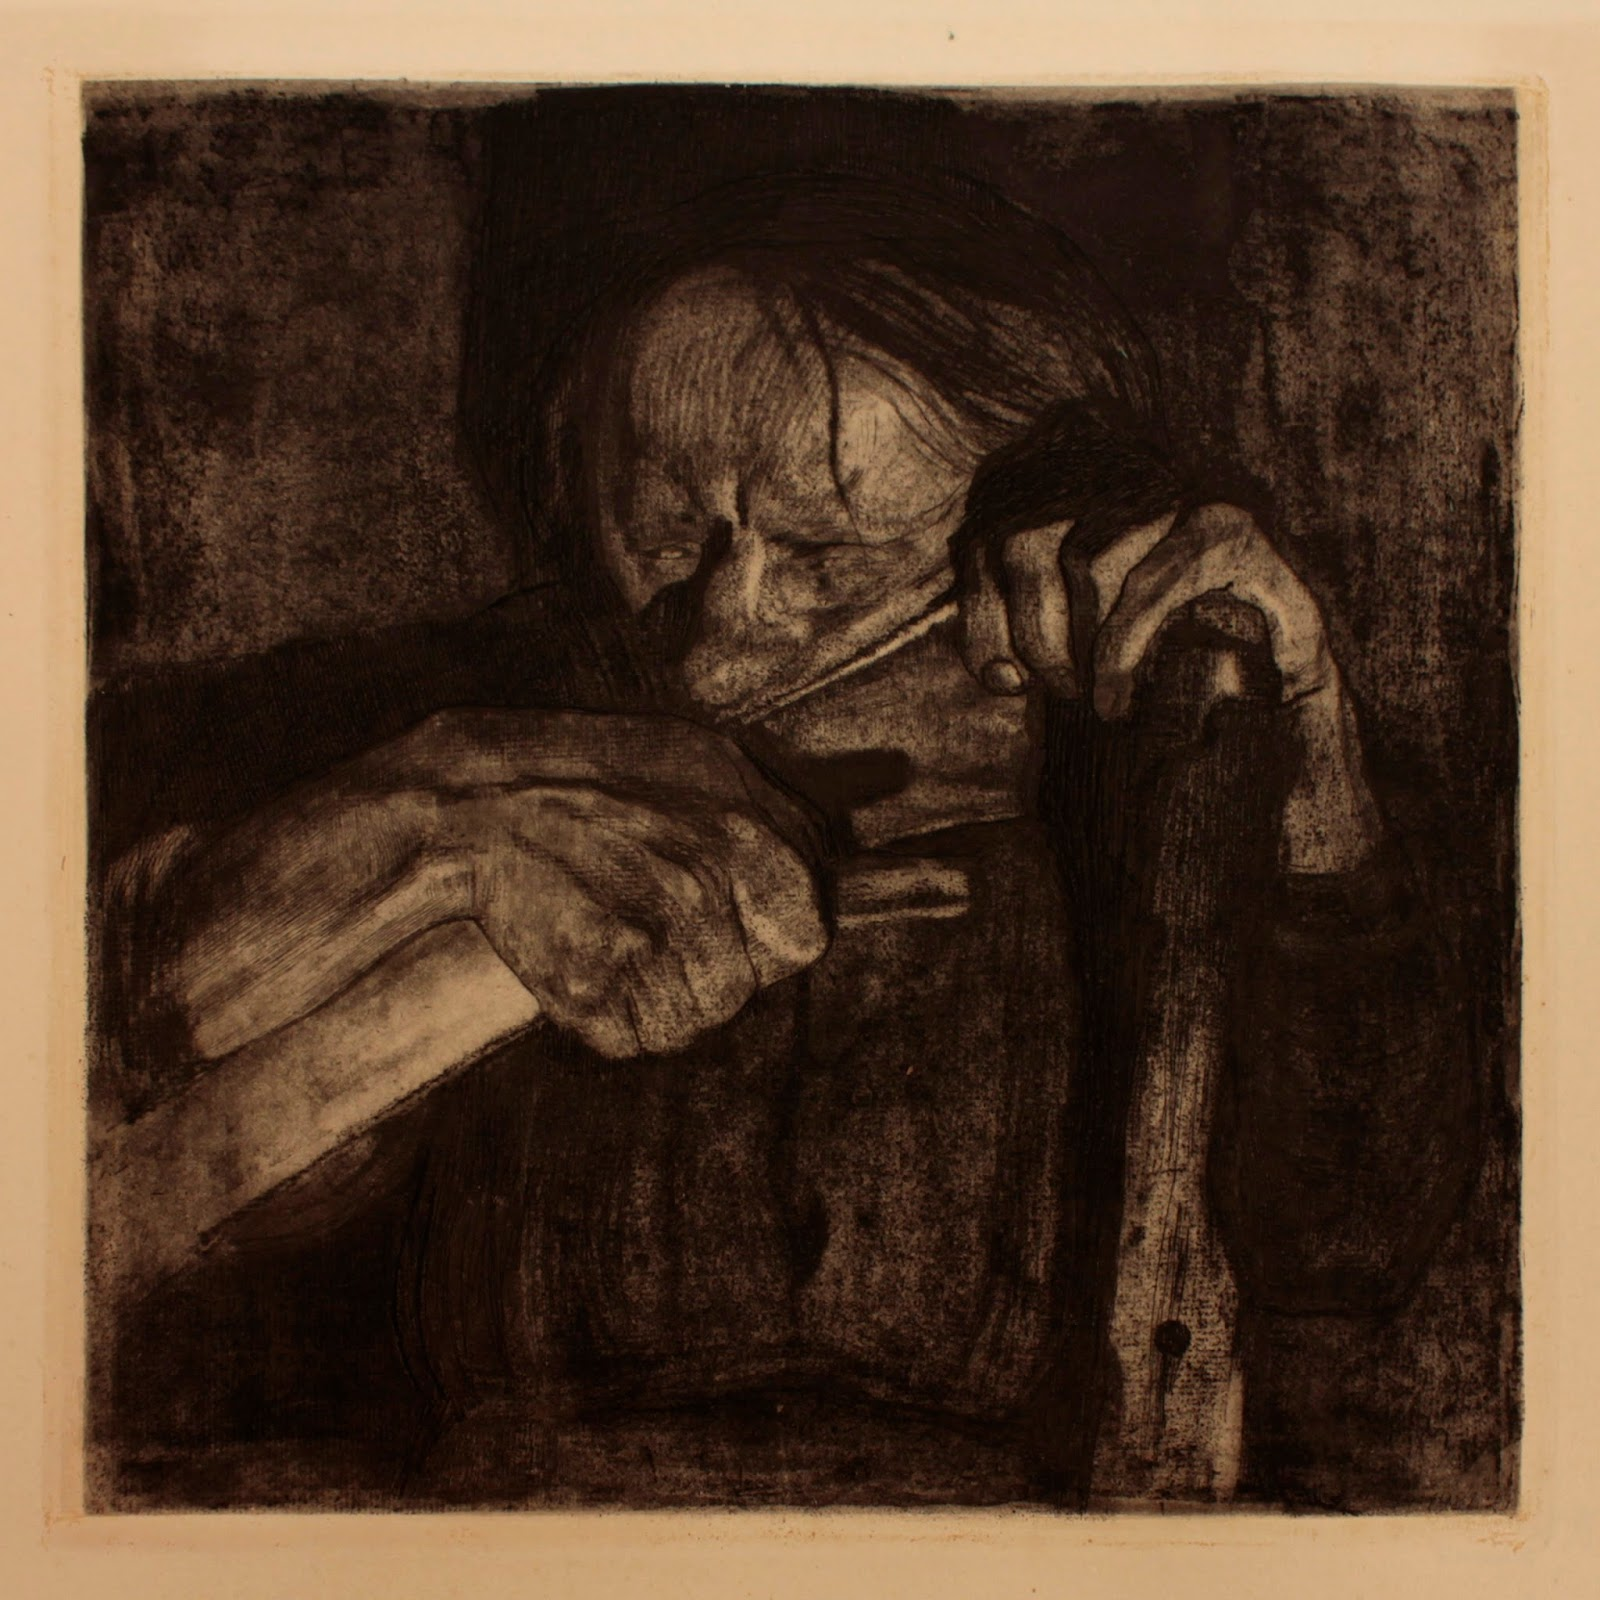 Käthe Kollwitz: Don't Fear the Reaper